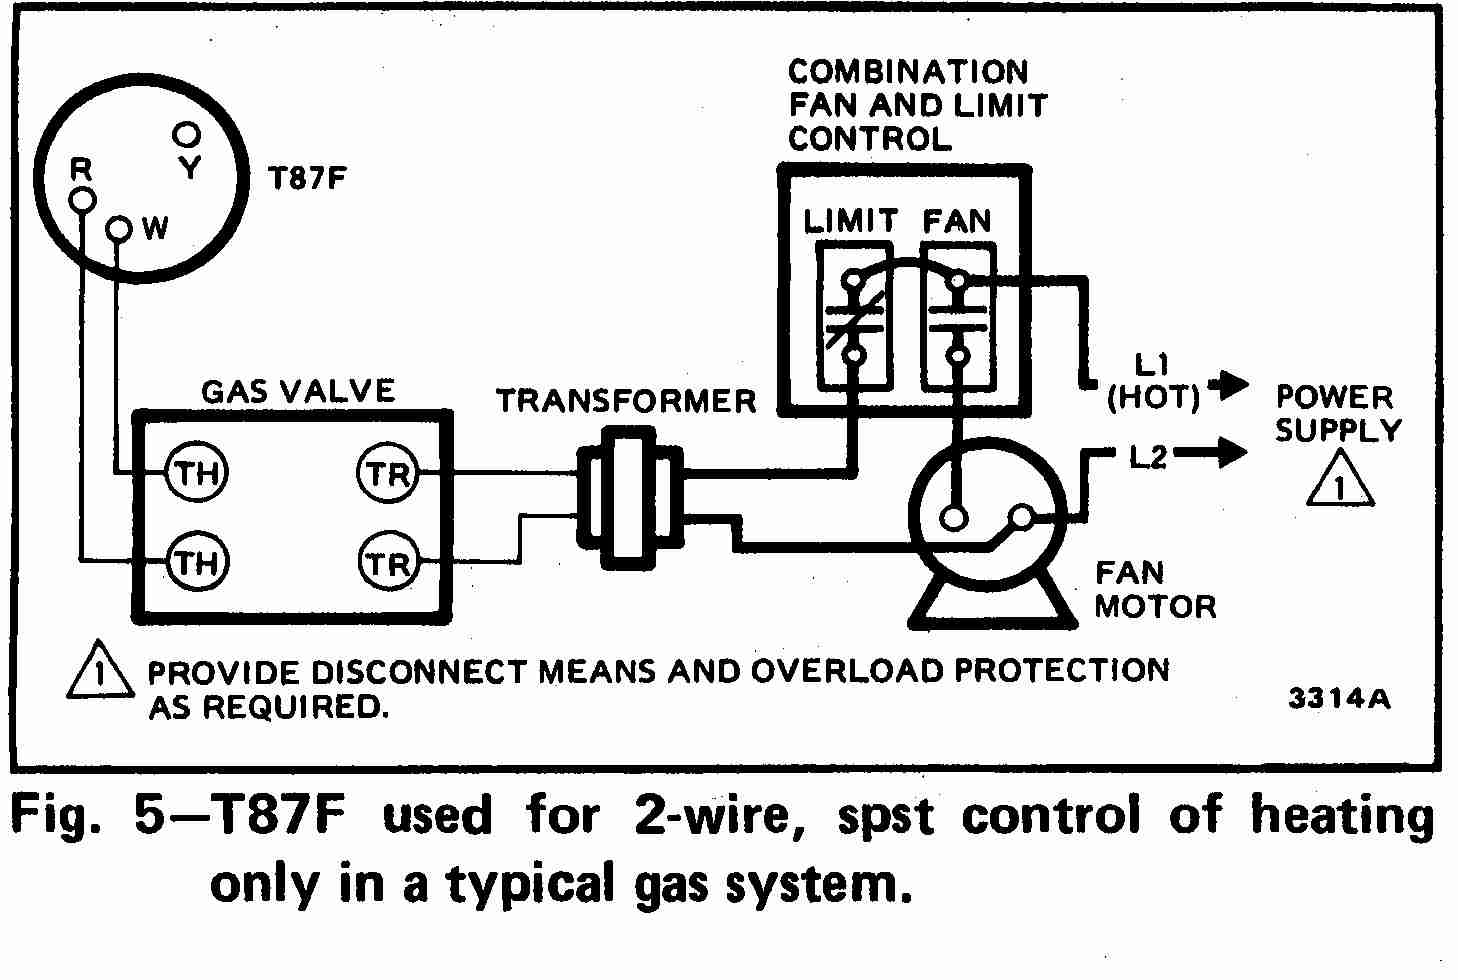 TT_T87F_0002_2Wg_DJF room thermostat wiring diagrams for hvac systems wall heater wiring diagram at soozxer.org